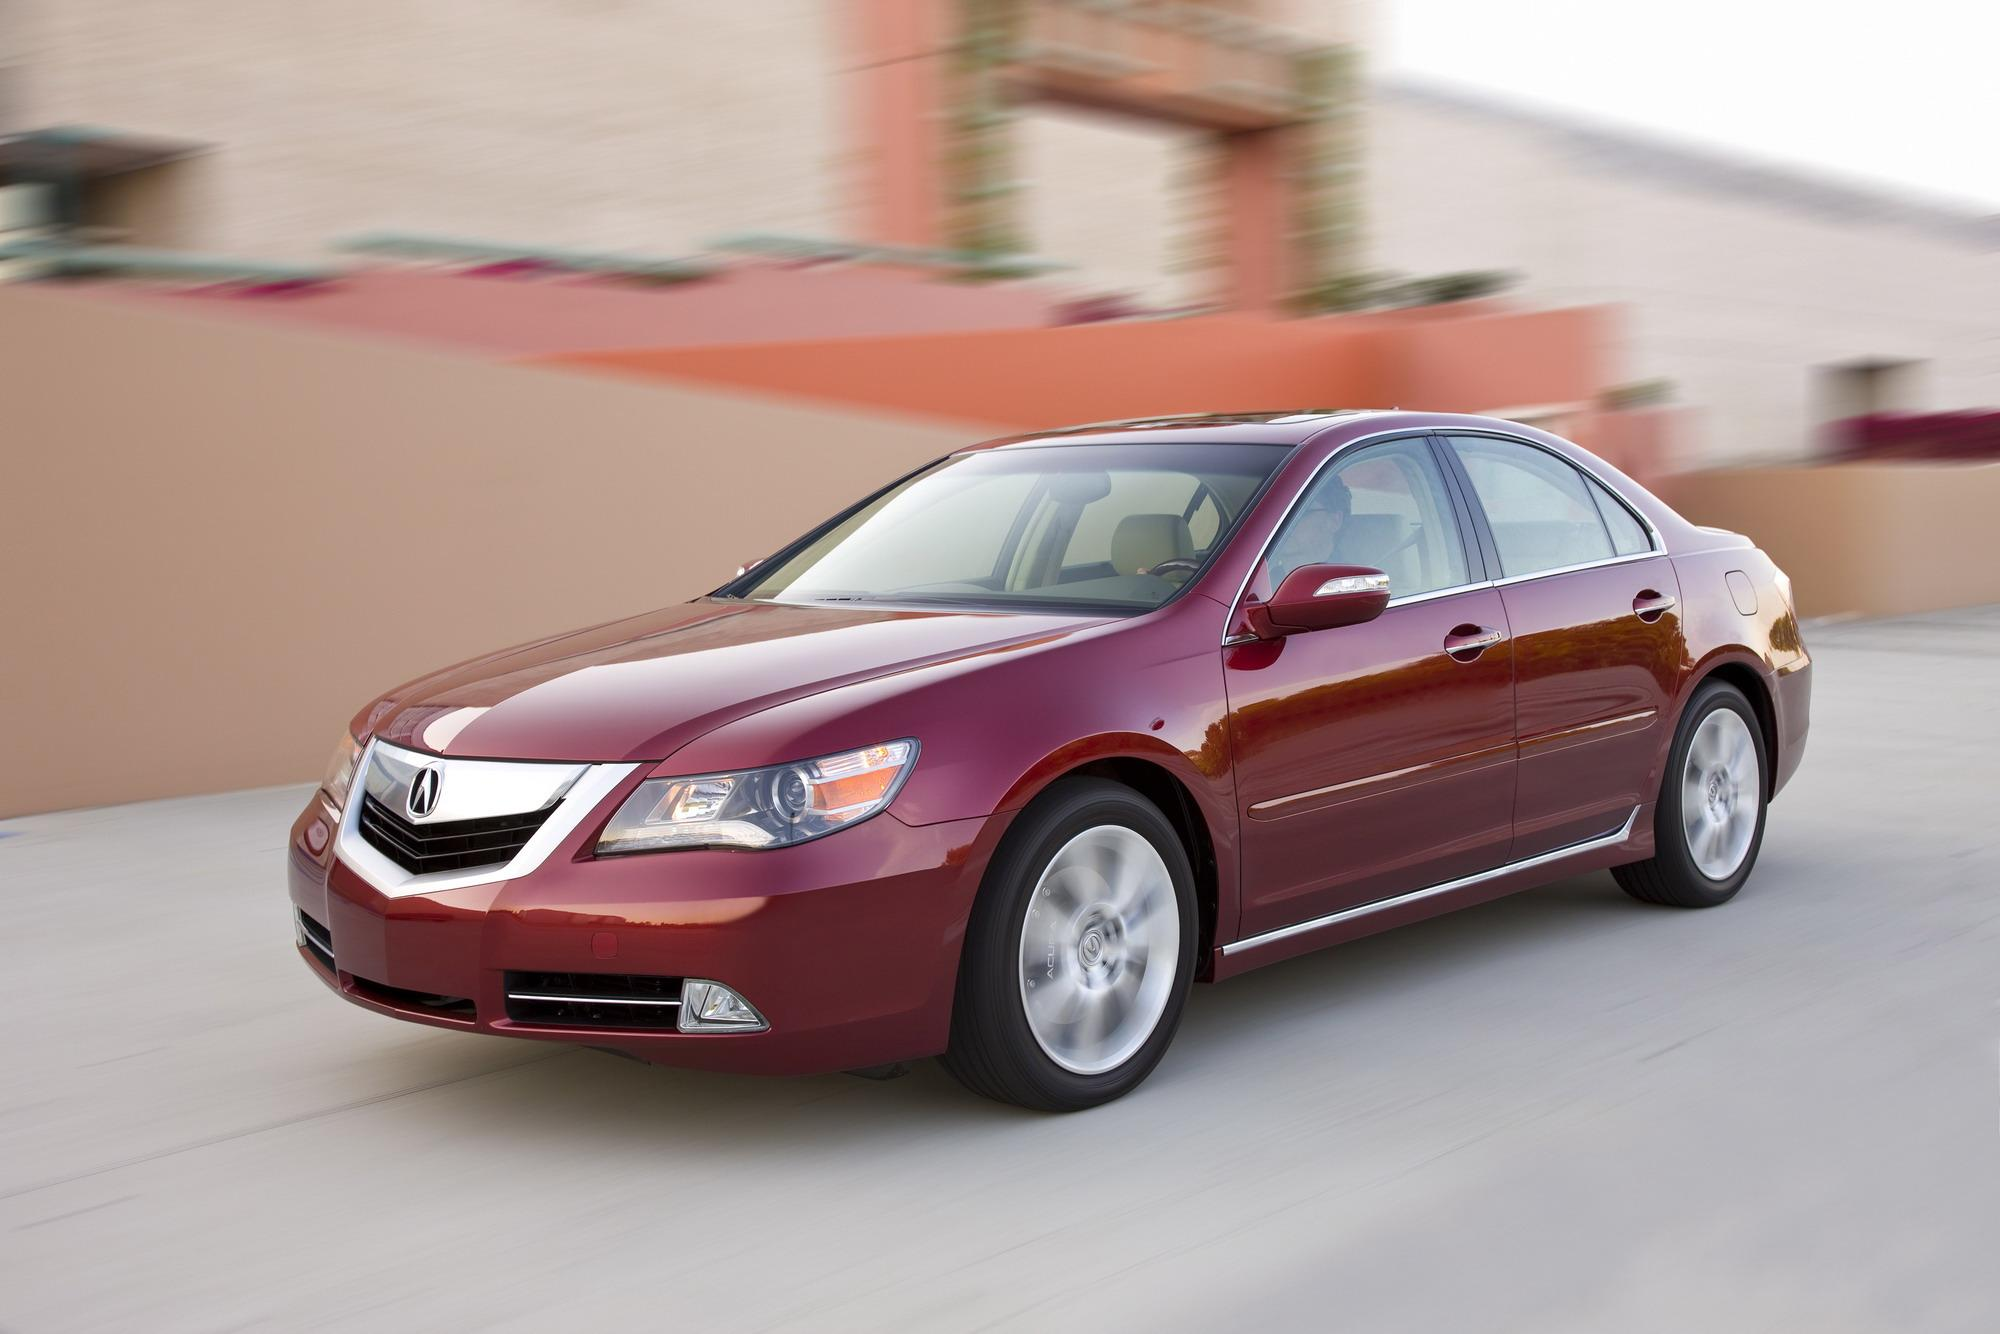 2010 acura rl top speed rh topspeed com 2010 Acura RL Owner's Manual Acura Service Manual